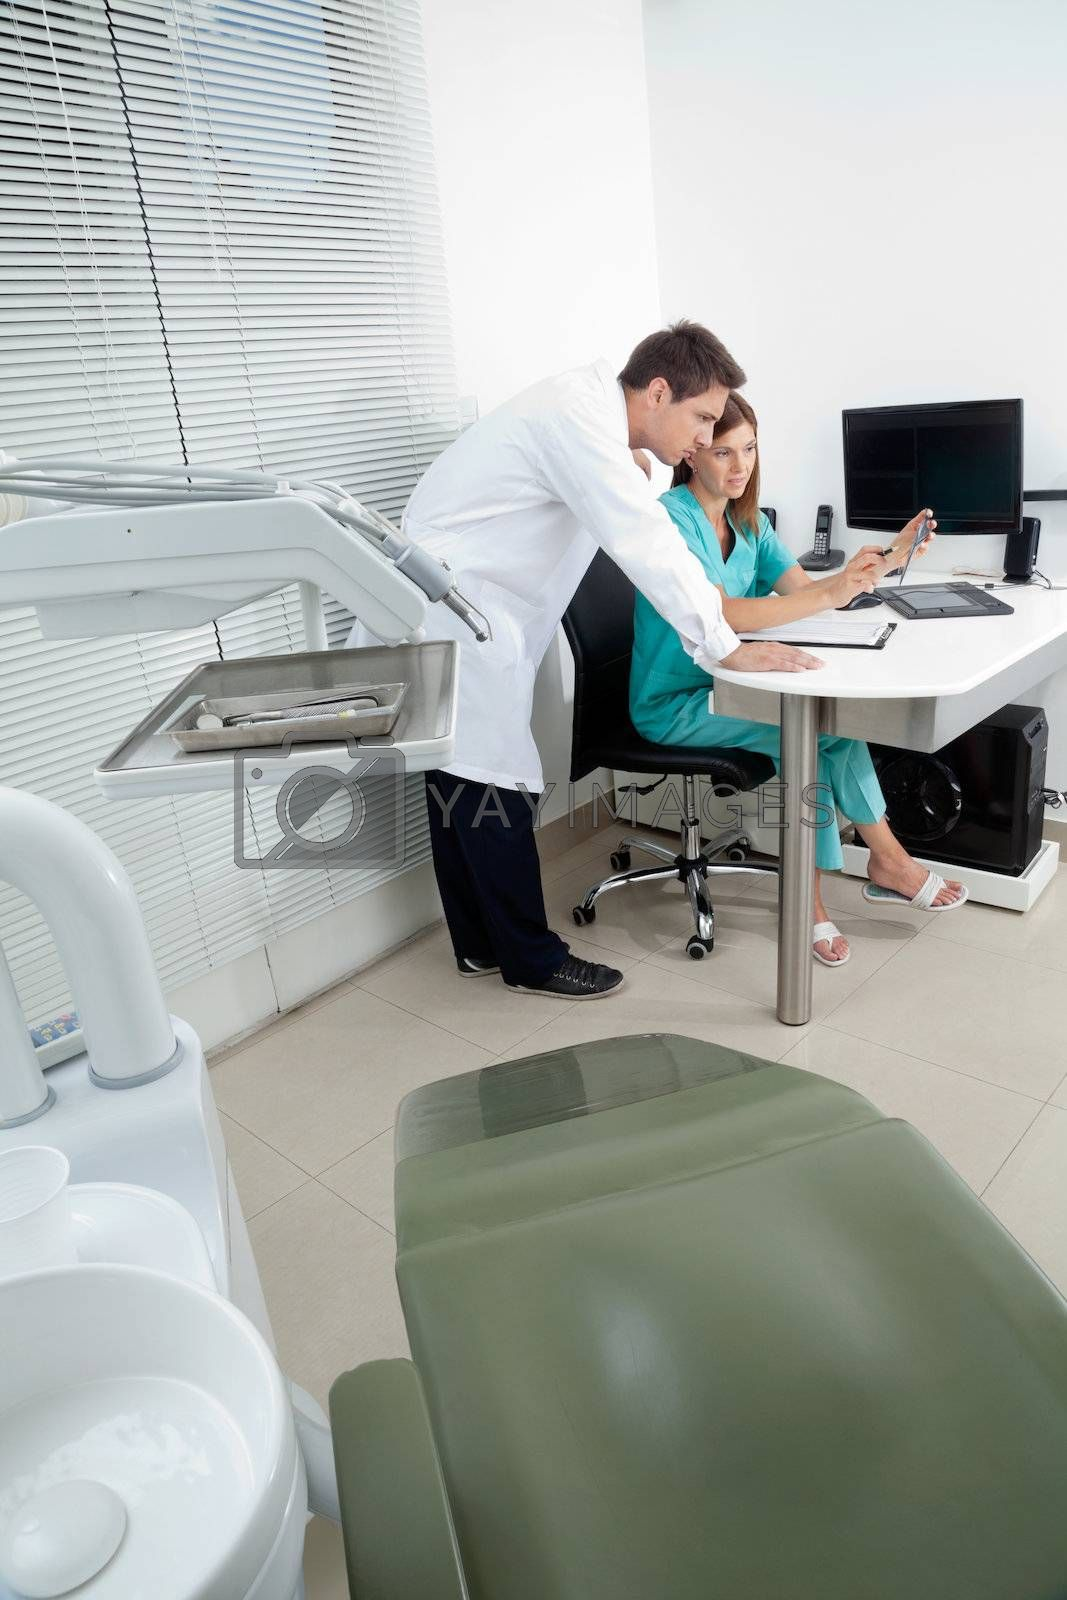 Doctor and female assistant in discussion with dentist chair in foreground